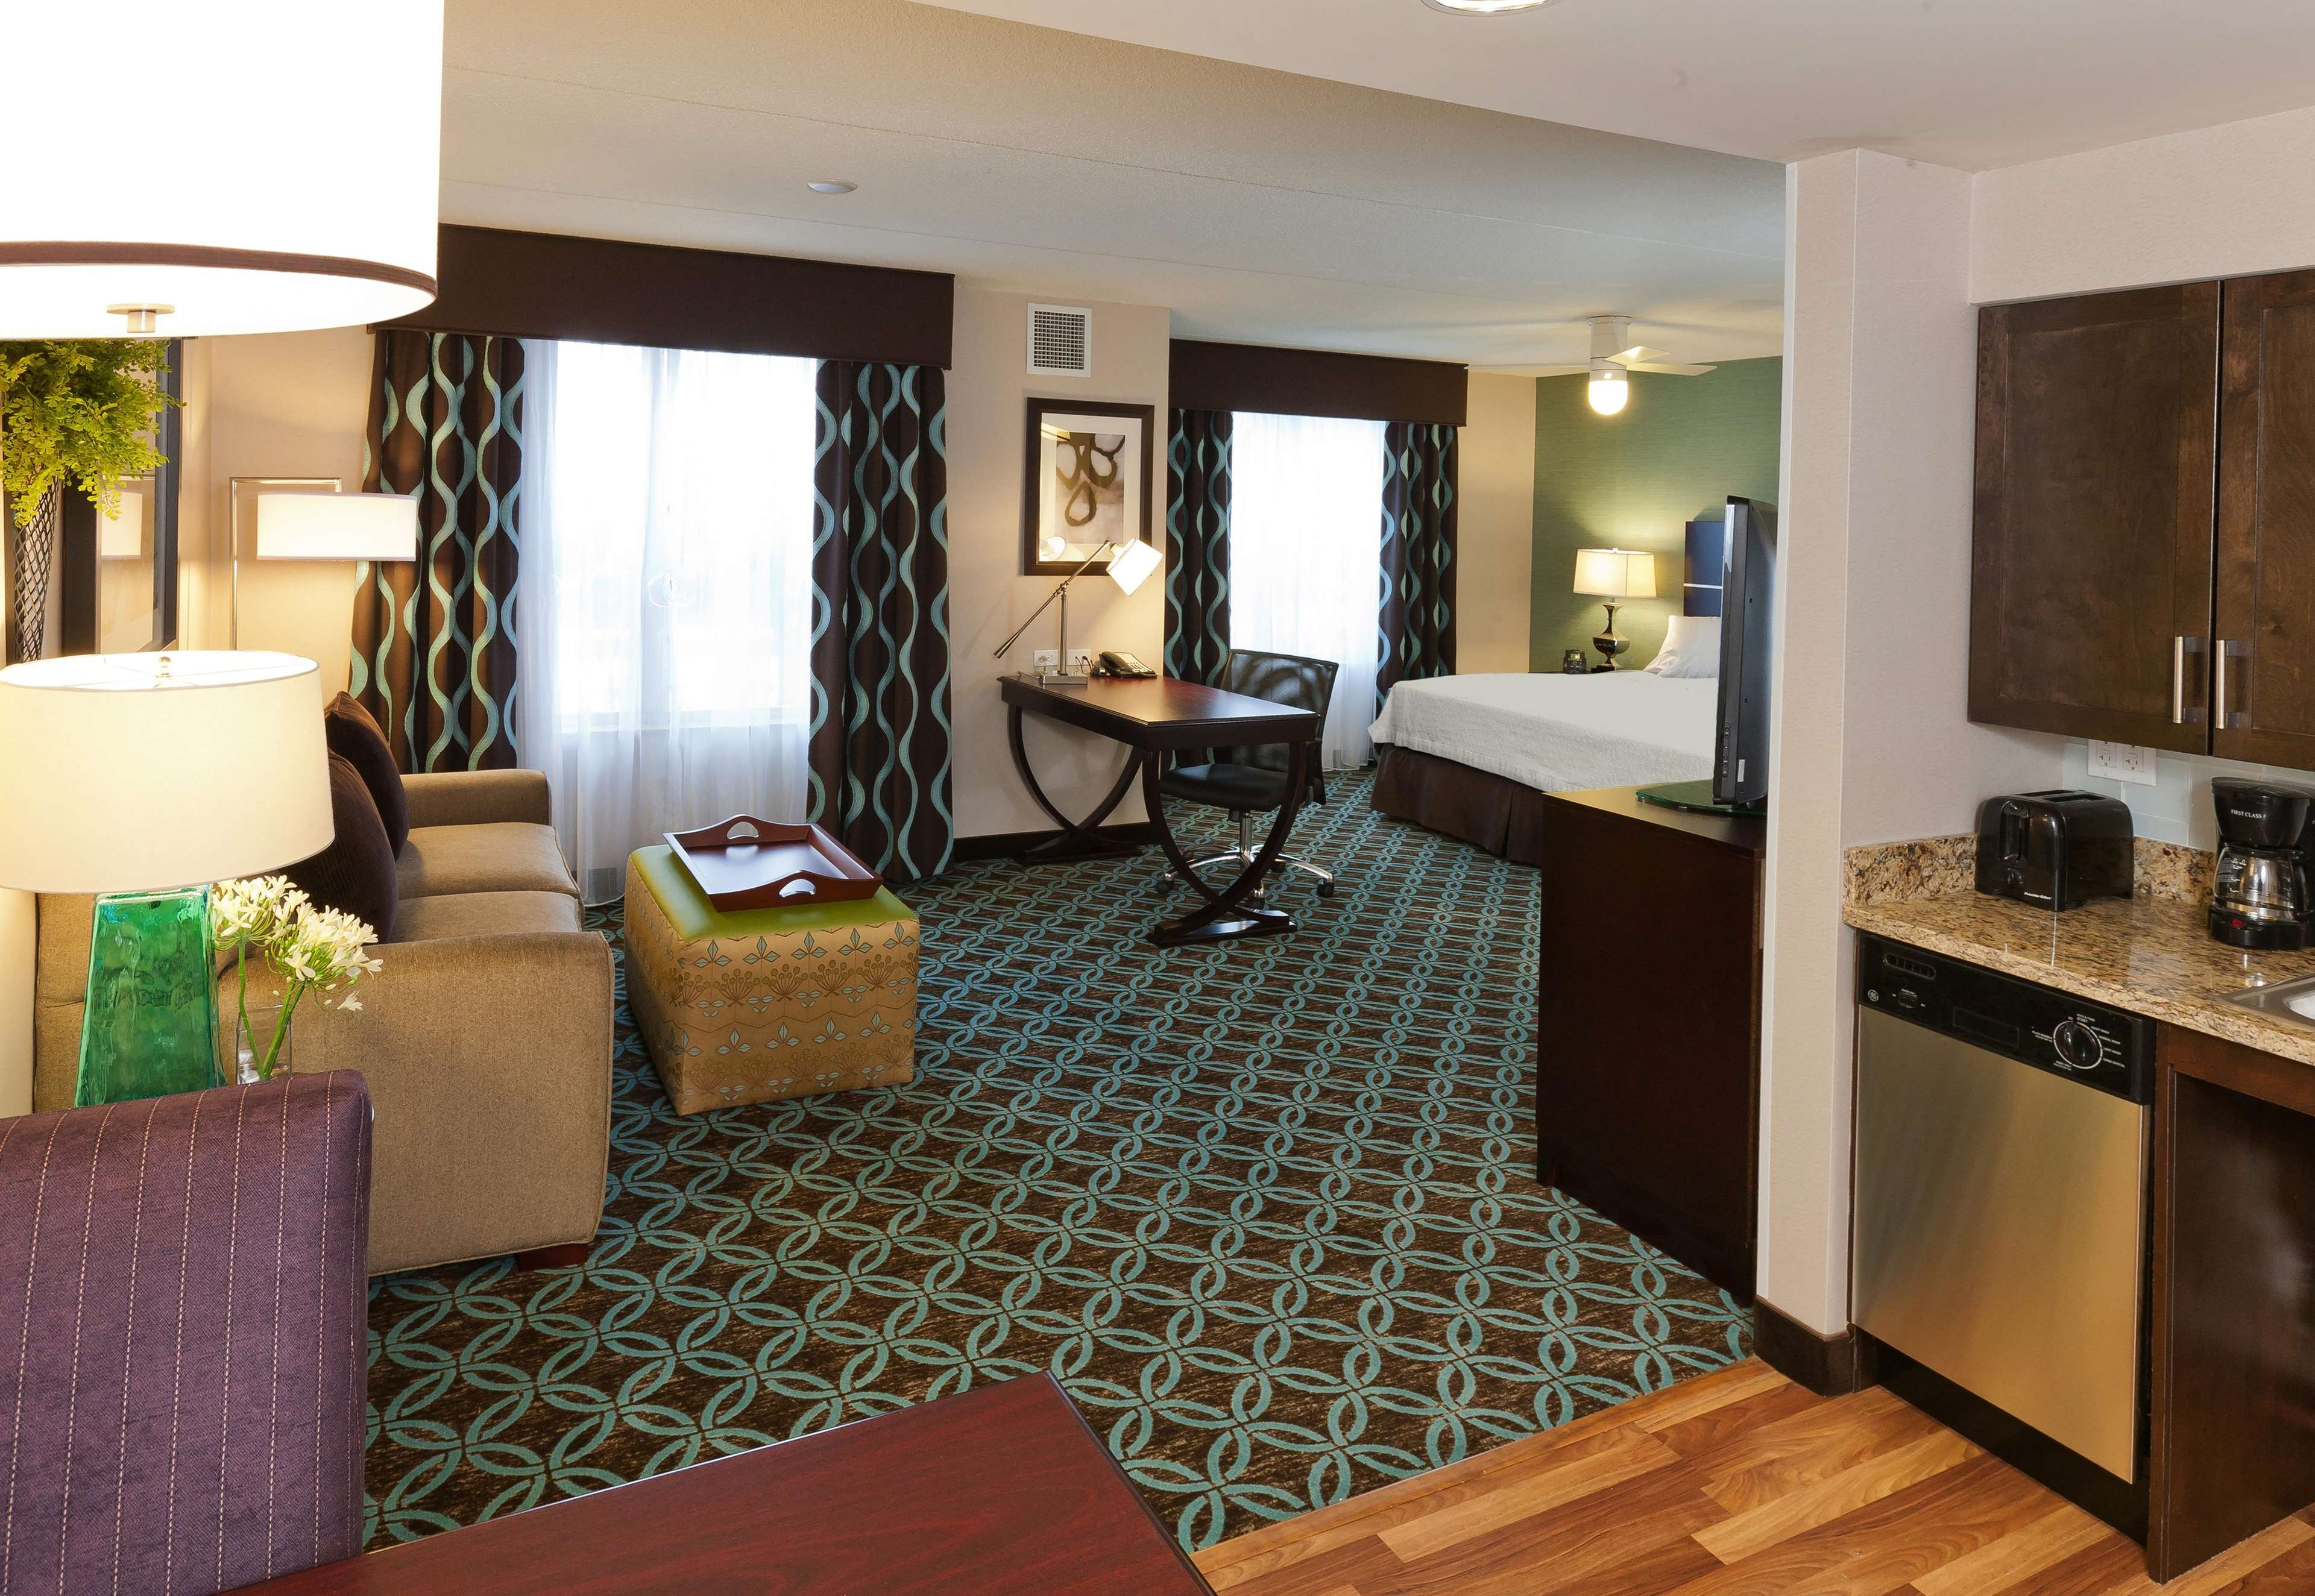 Homewood Suites by Hilton Boston/Canton, MA image 23